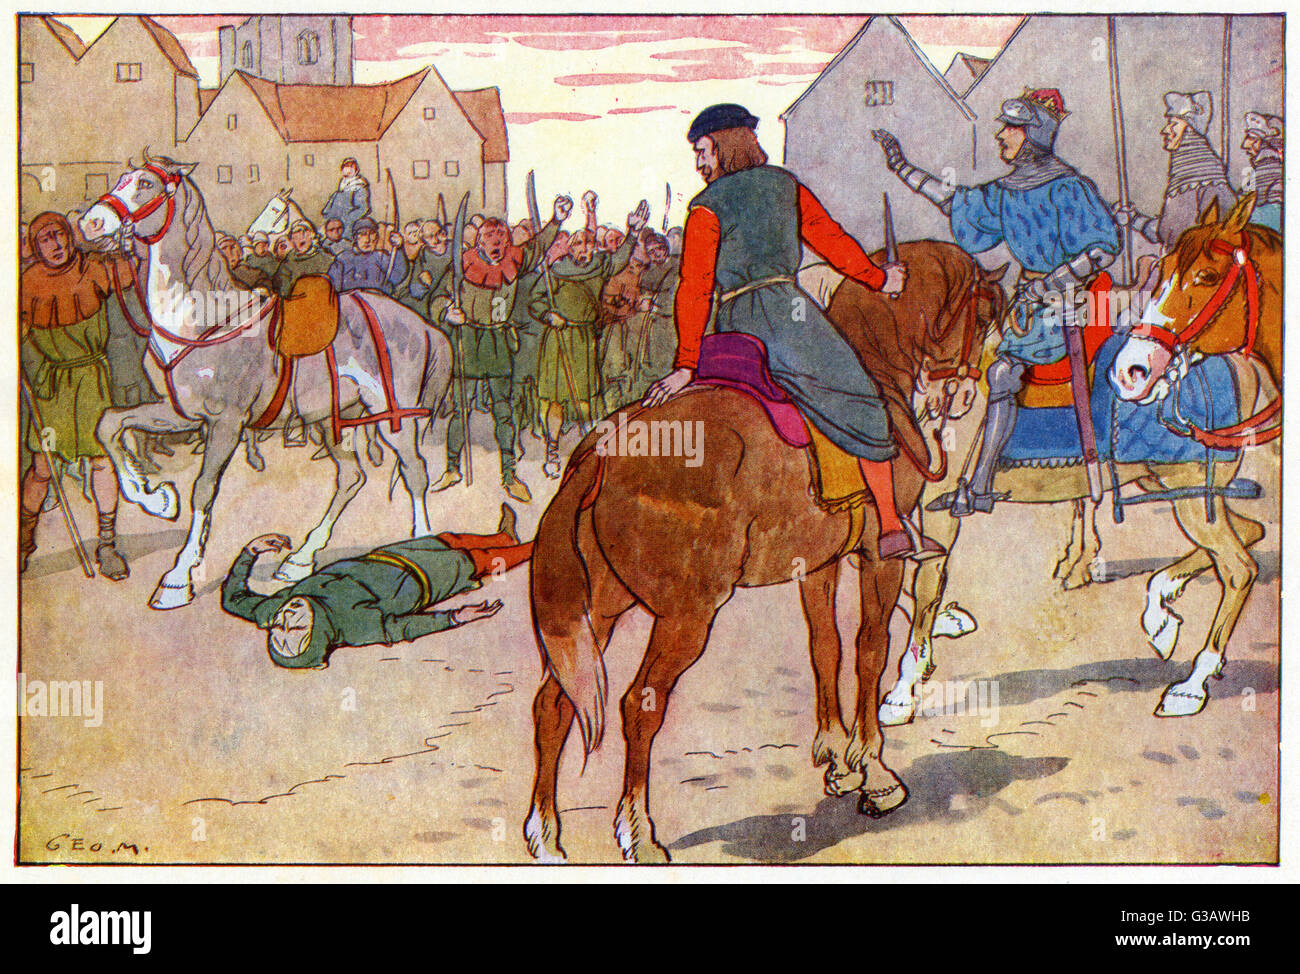 The death of Wat Tyler, the leader of the 1381 Peasants' Revolt in England.  He marched a group of protesters from Canterbury to the capital to oppose  the ...